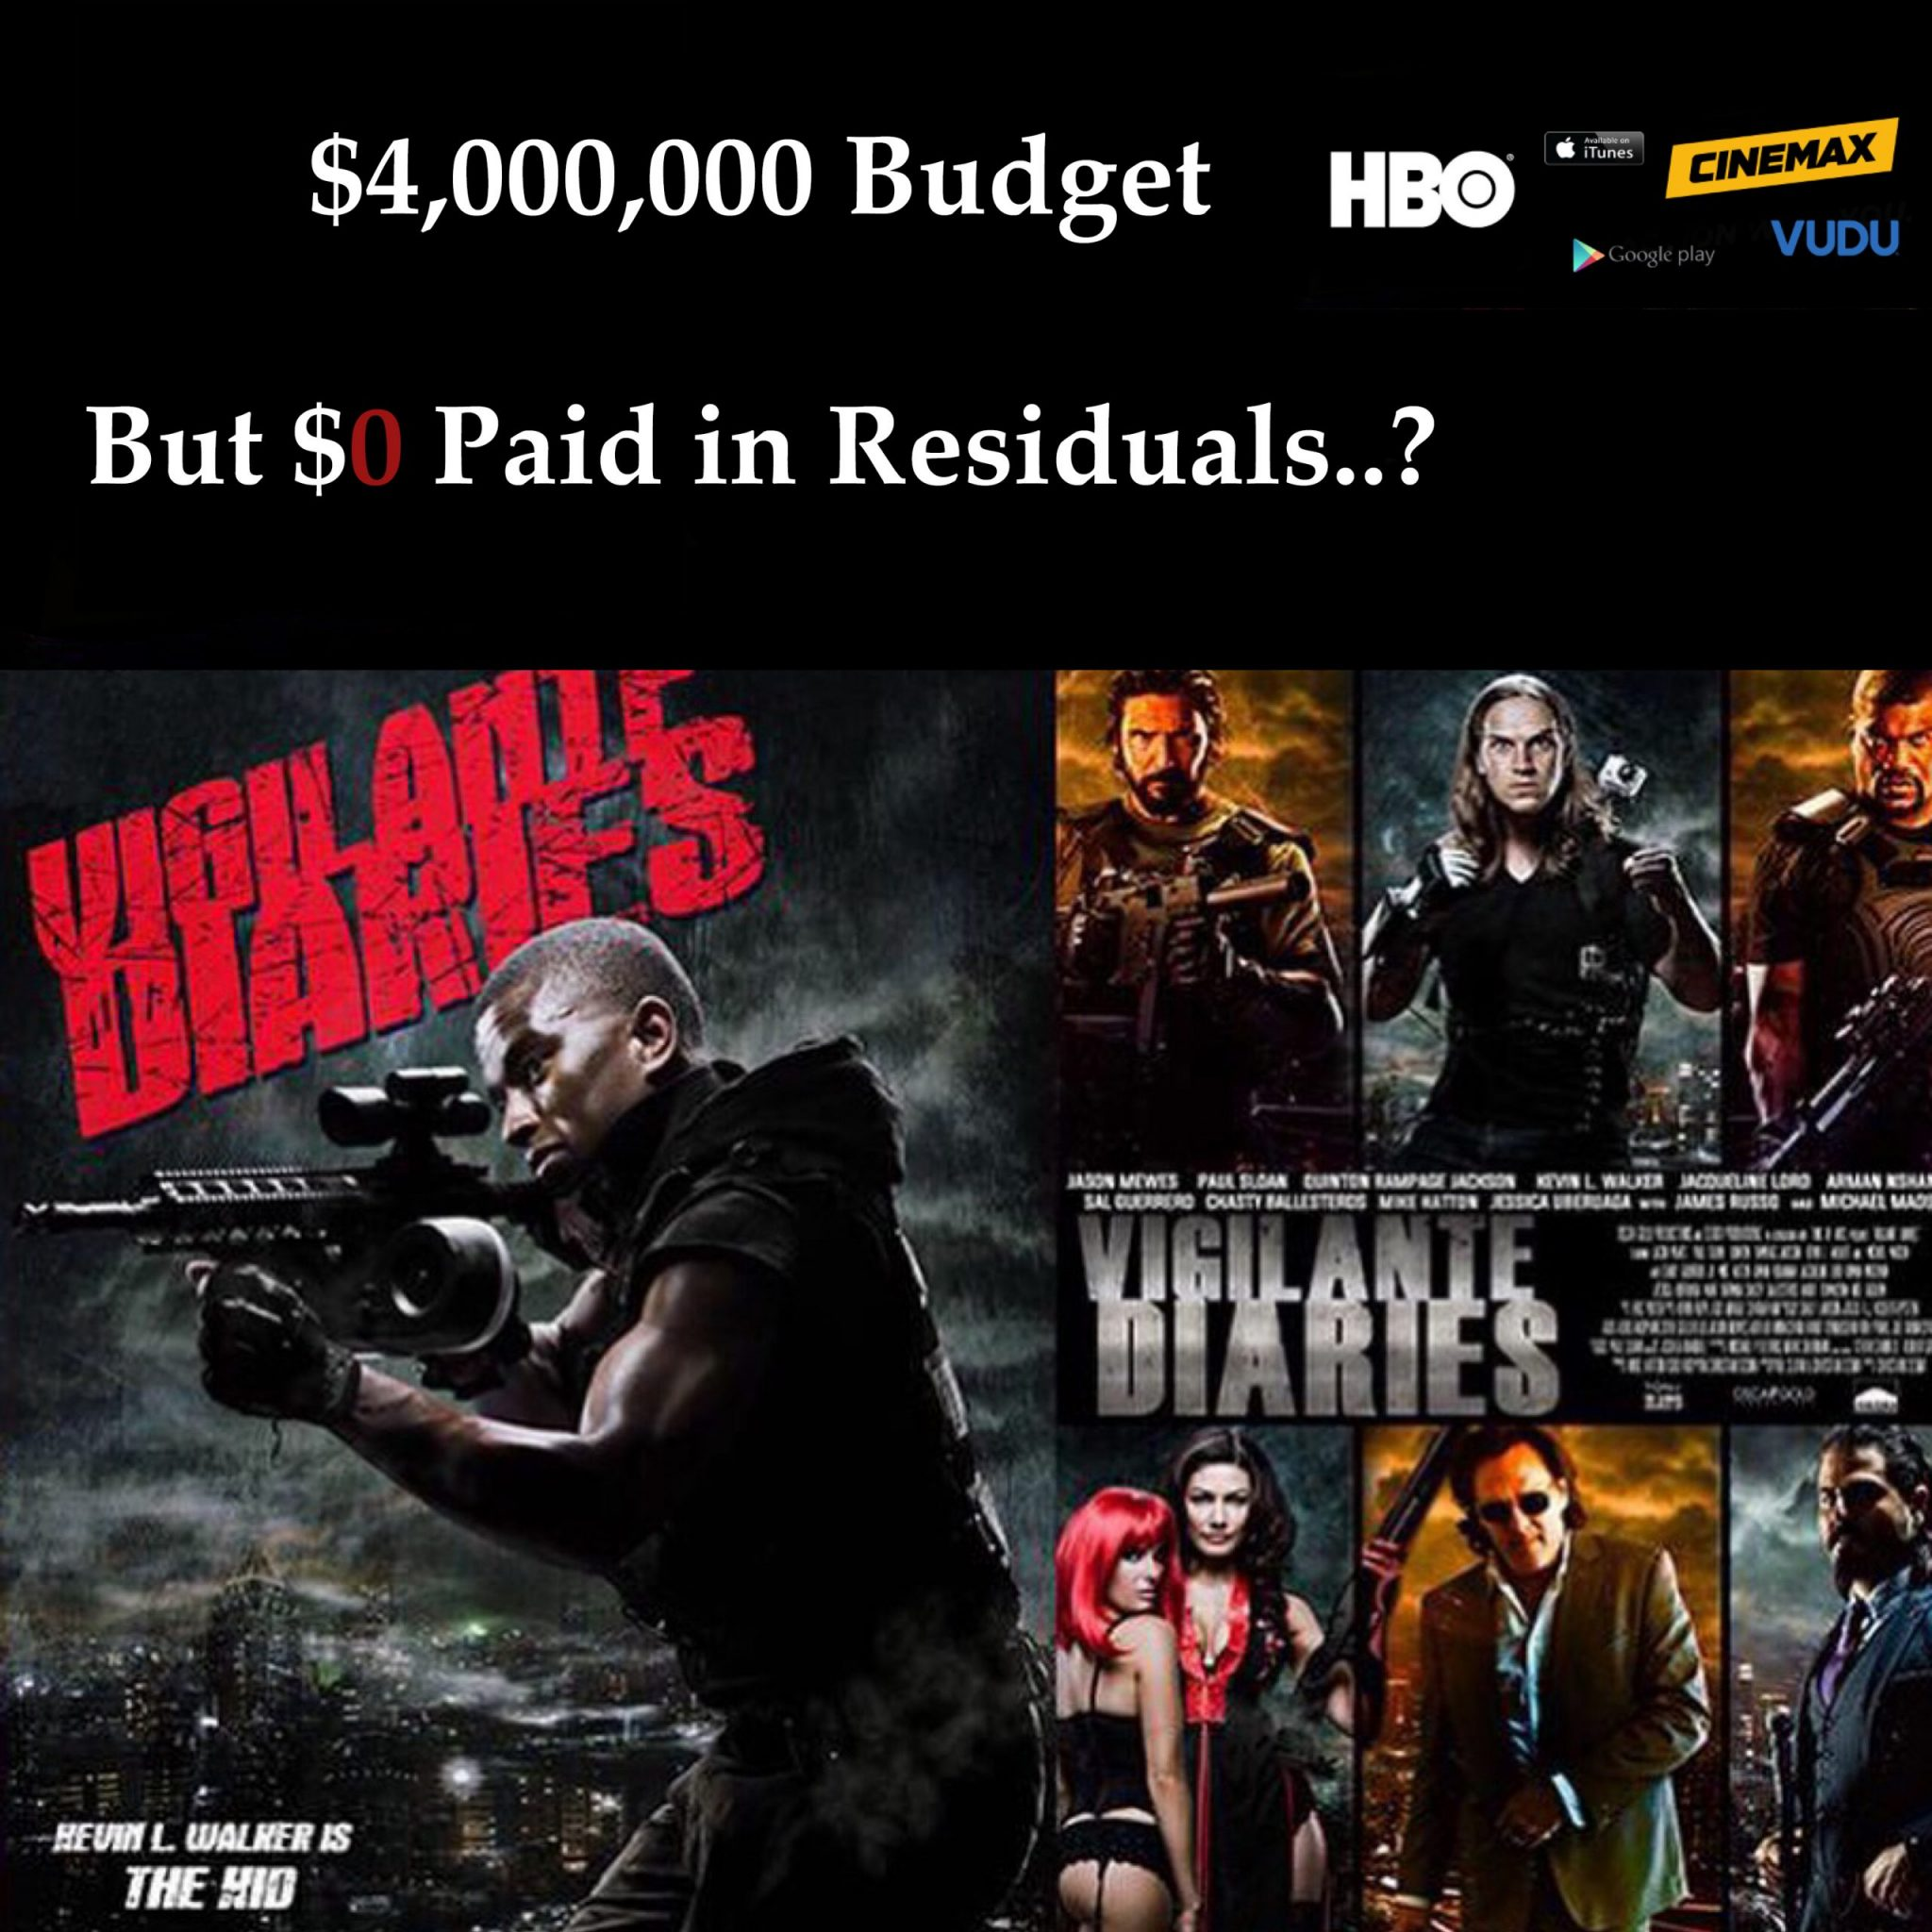 Vigilante Diaries - Producers dont pay Cast & Crew